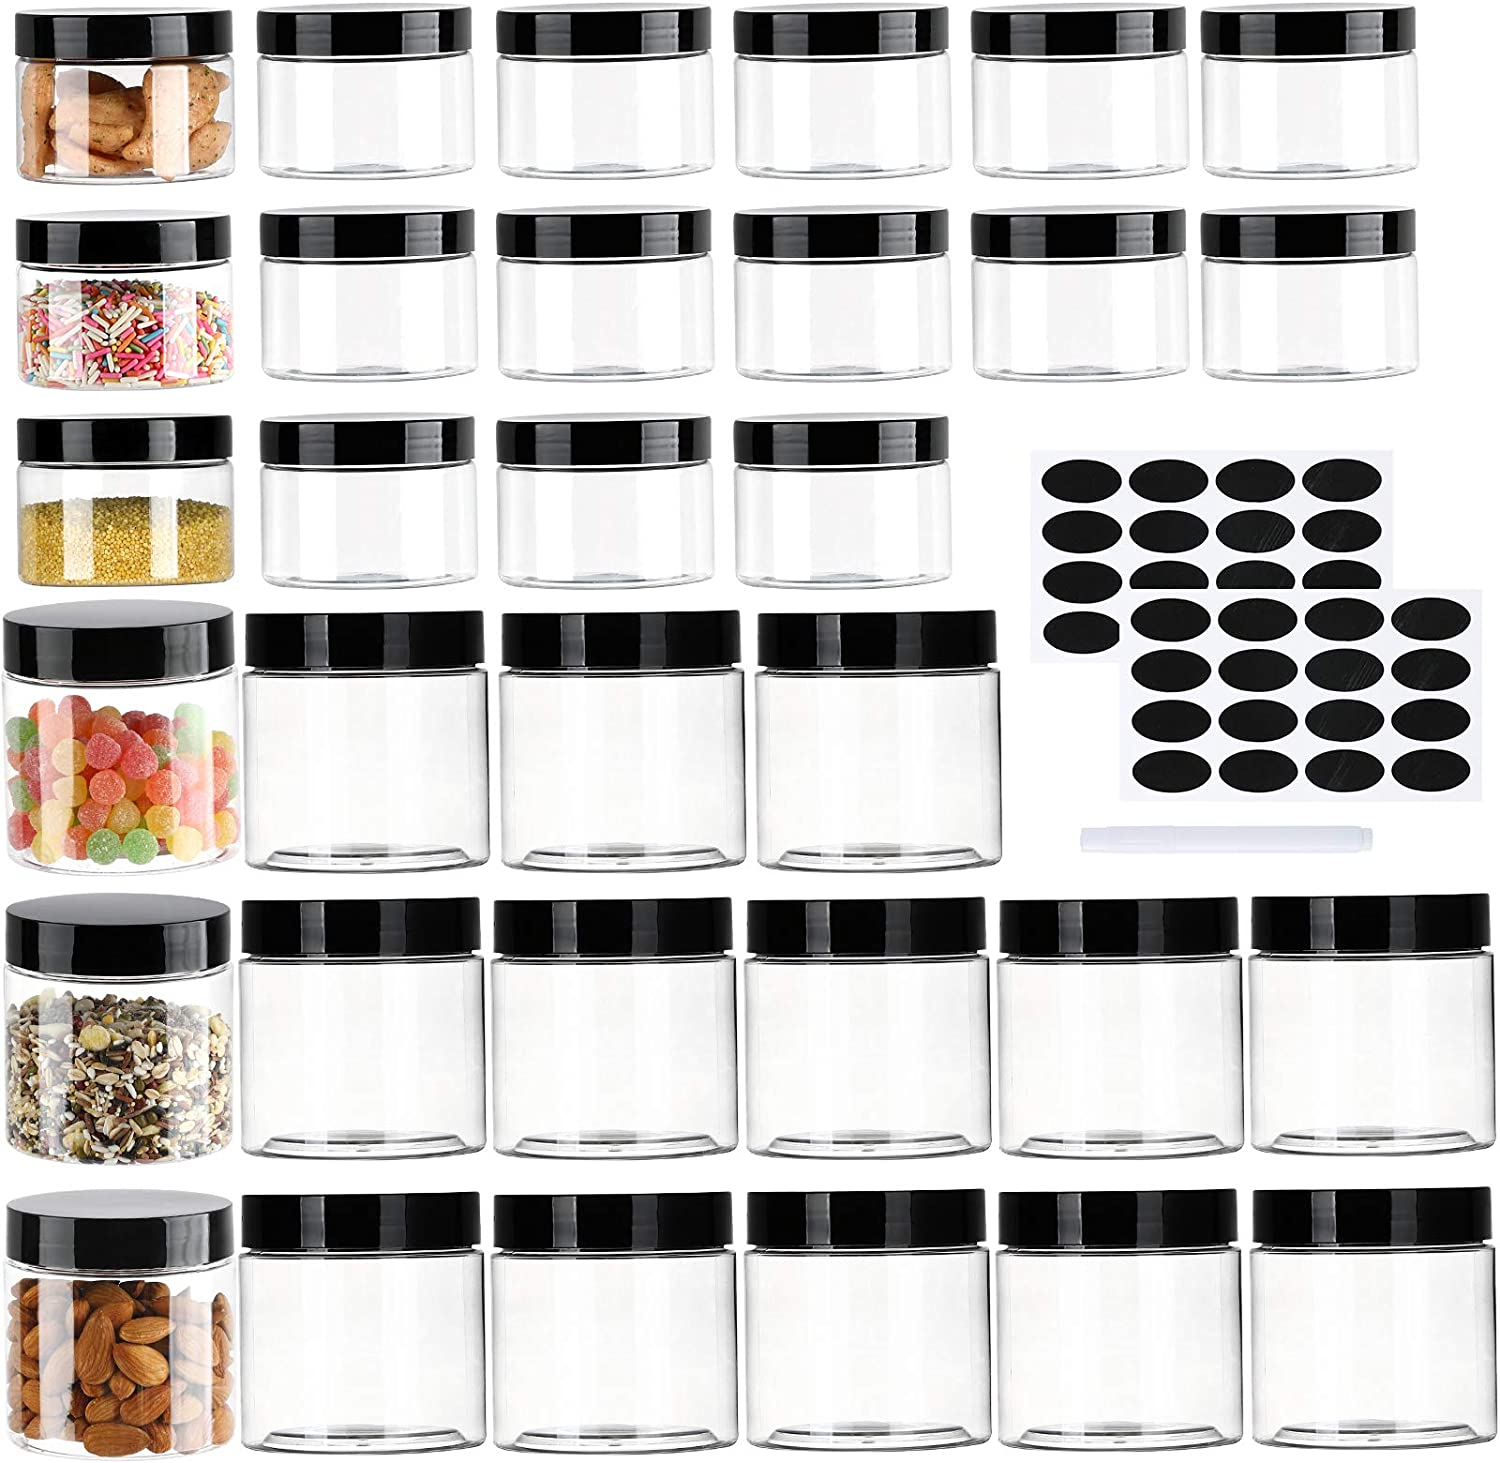 32 Pack Plastic Jars with Lids, 4oz + 12oz Clear Plastic Slime Containers Set for Kitchen Household Food Storage Dry Goods, Creams and More